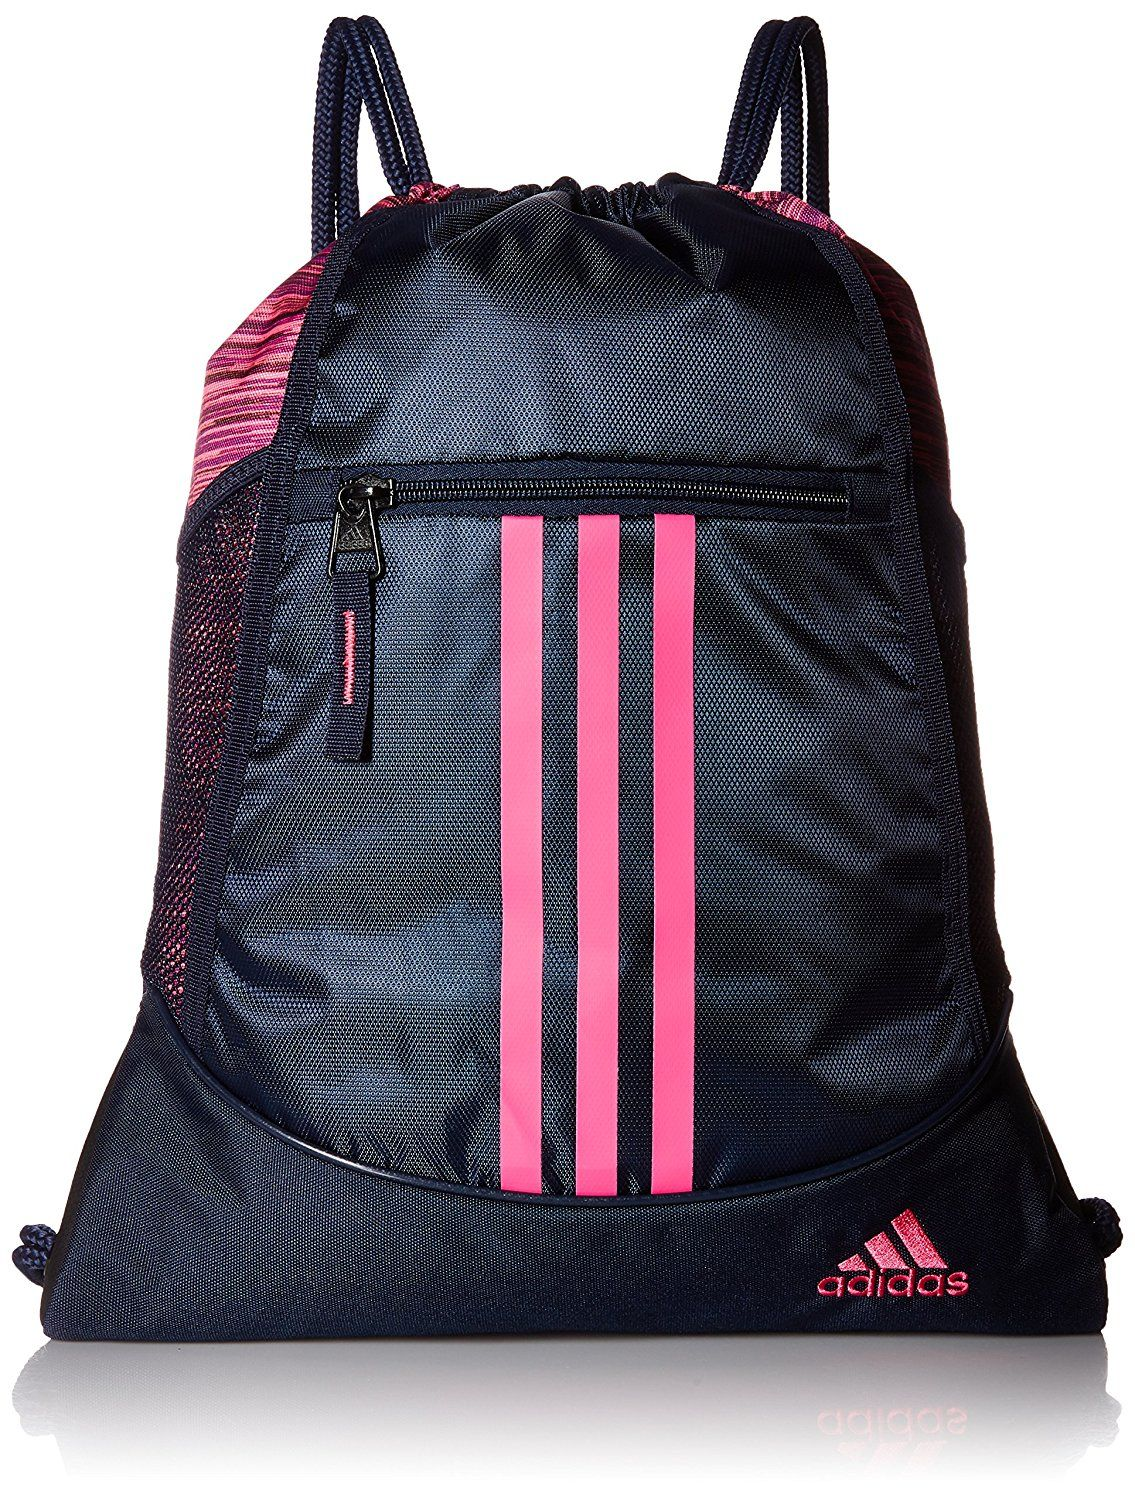 Details About Adidas Alliance Sack Pack Drawstring Gym Bags Unisex